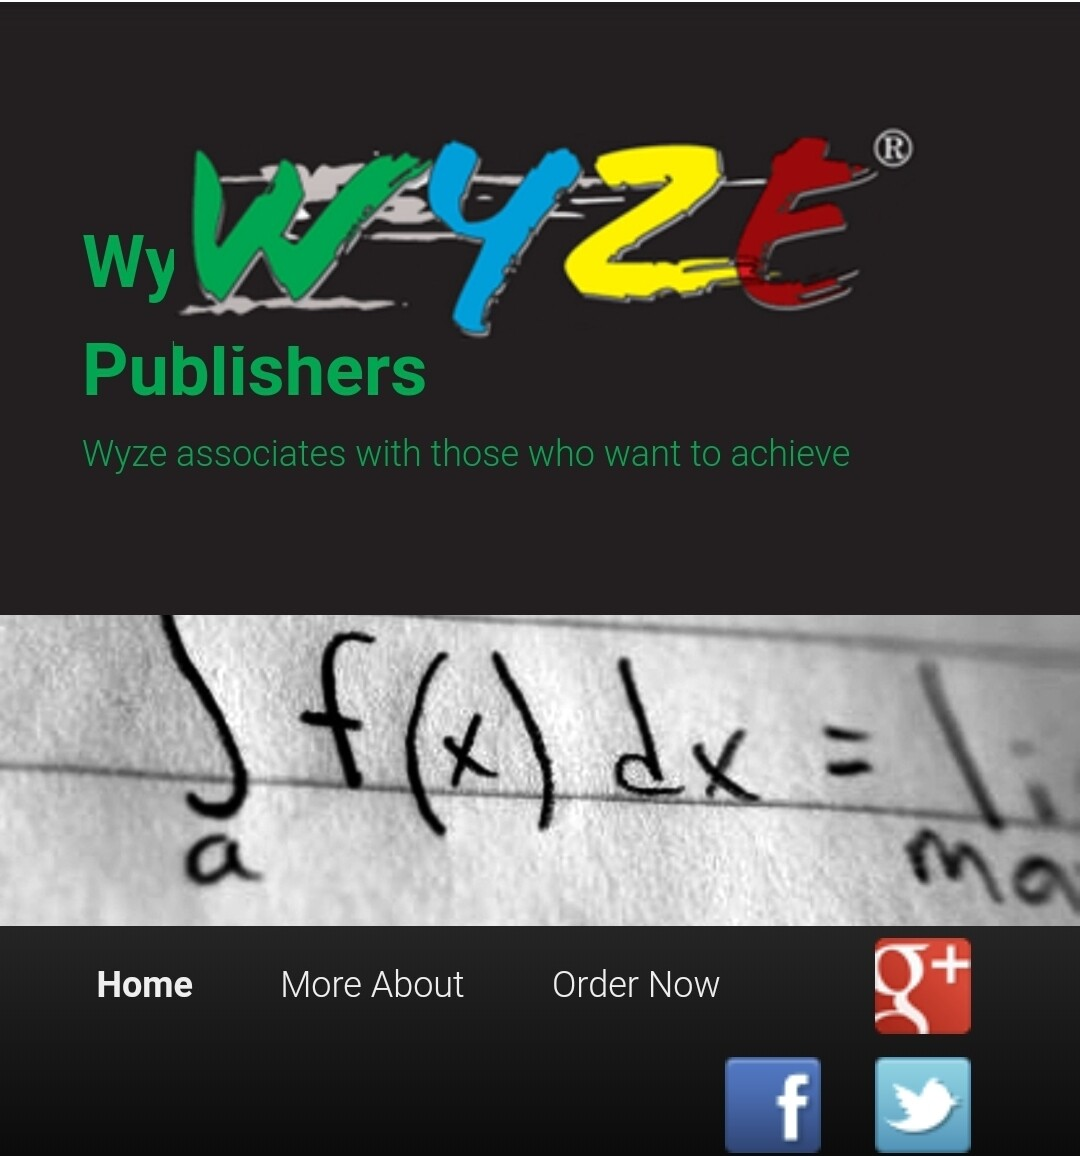 More Information Available on Wyze.co.za